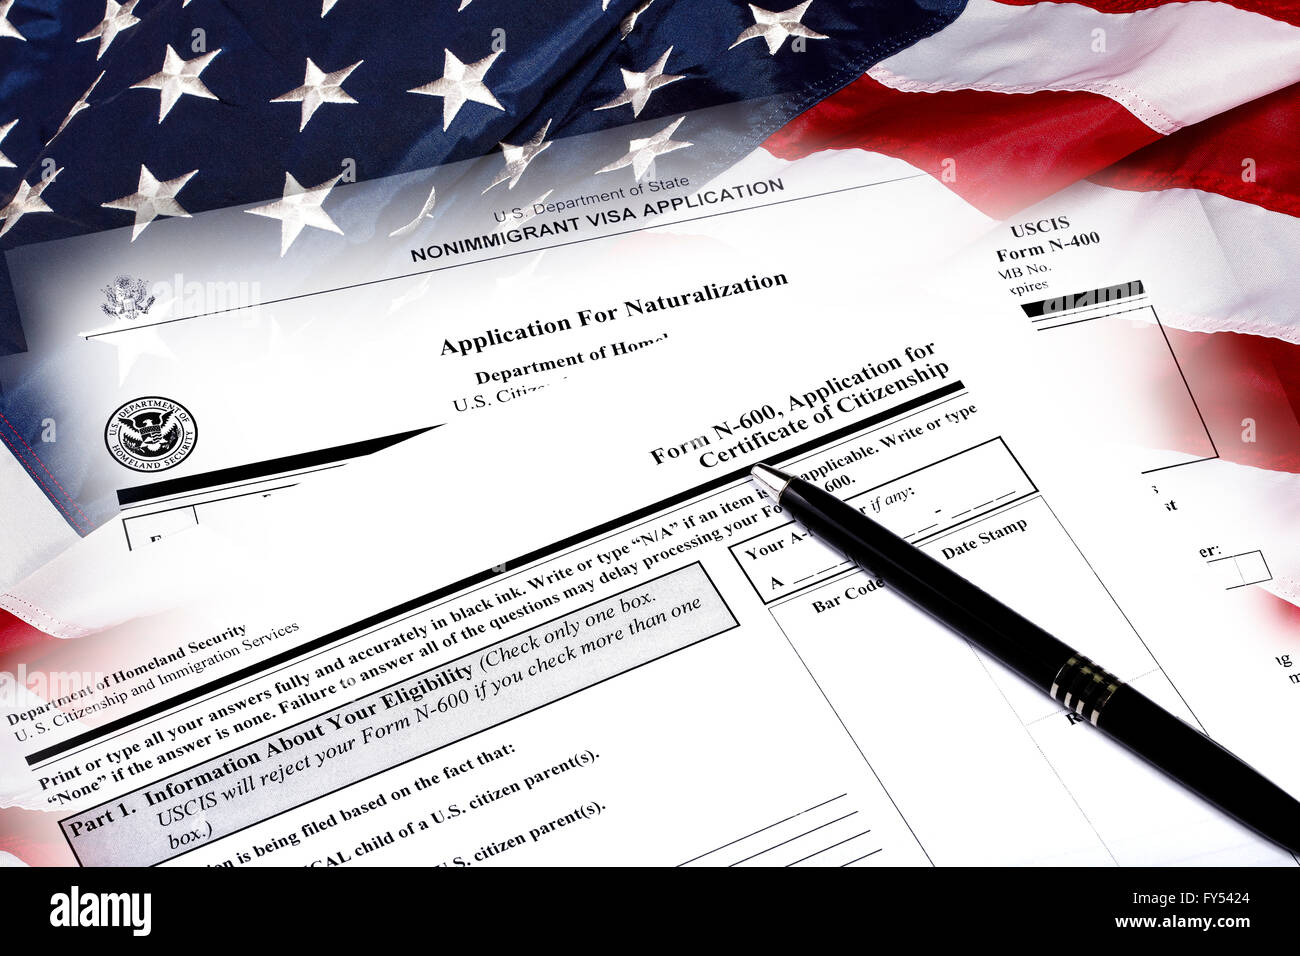 Immigration And Naturalization Stock Photos & Immigration And ...